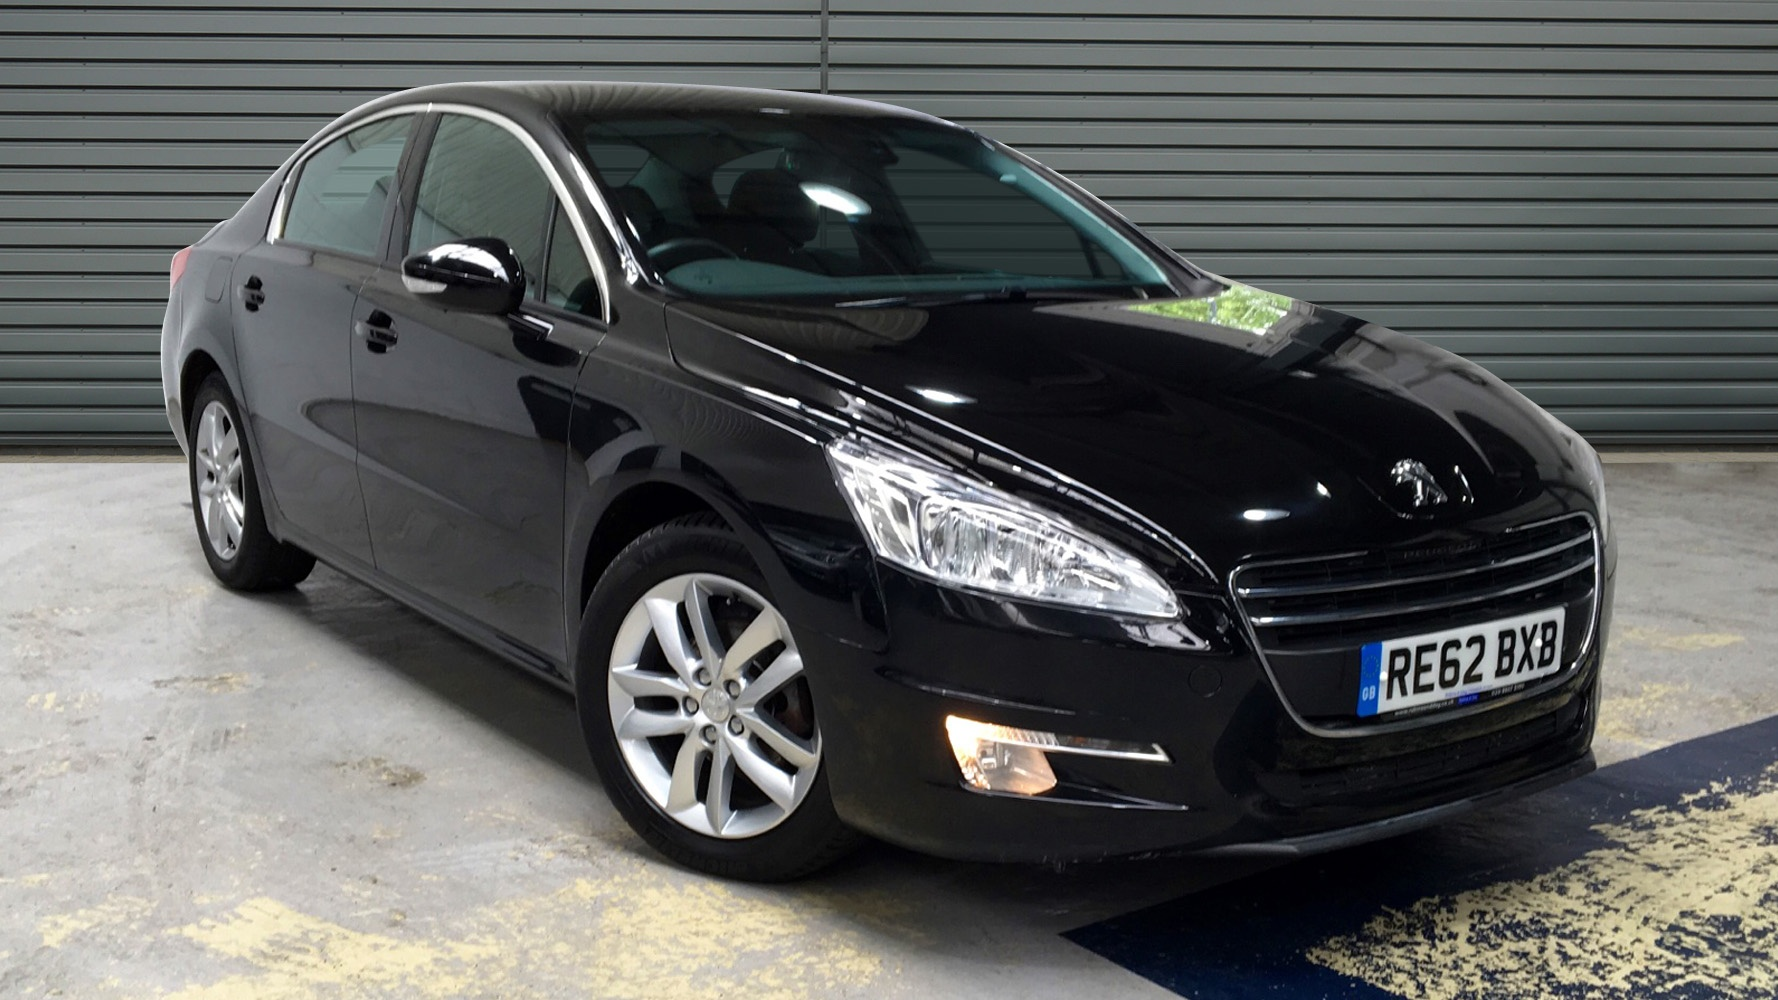 used peugeot 508 saloon 2 0 hdi fap active 4dr 2013 re62bxb. Black Bedroom Furniture Sets. Home Design Ideas